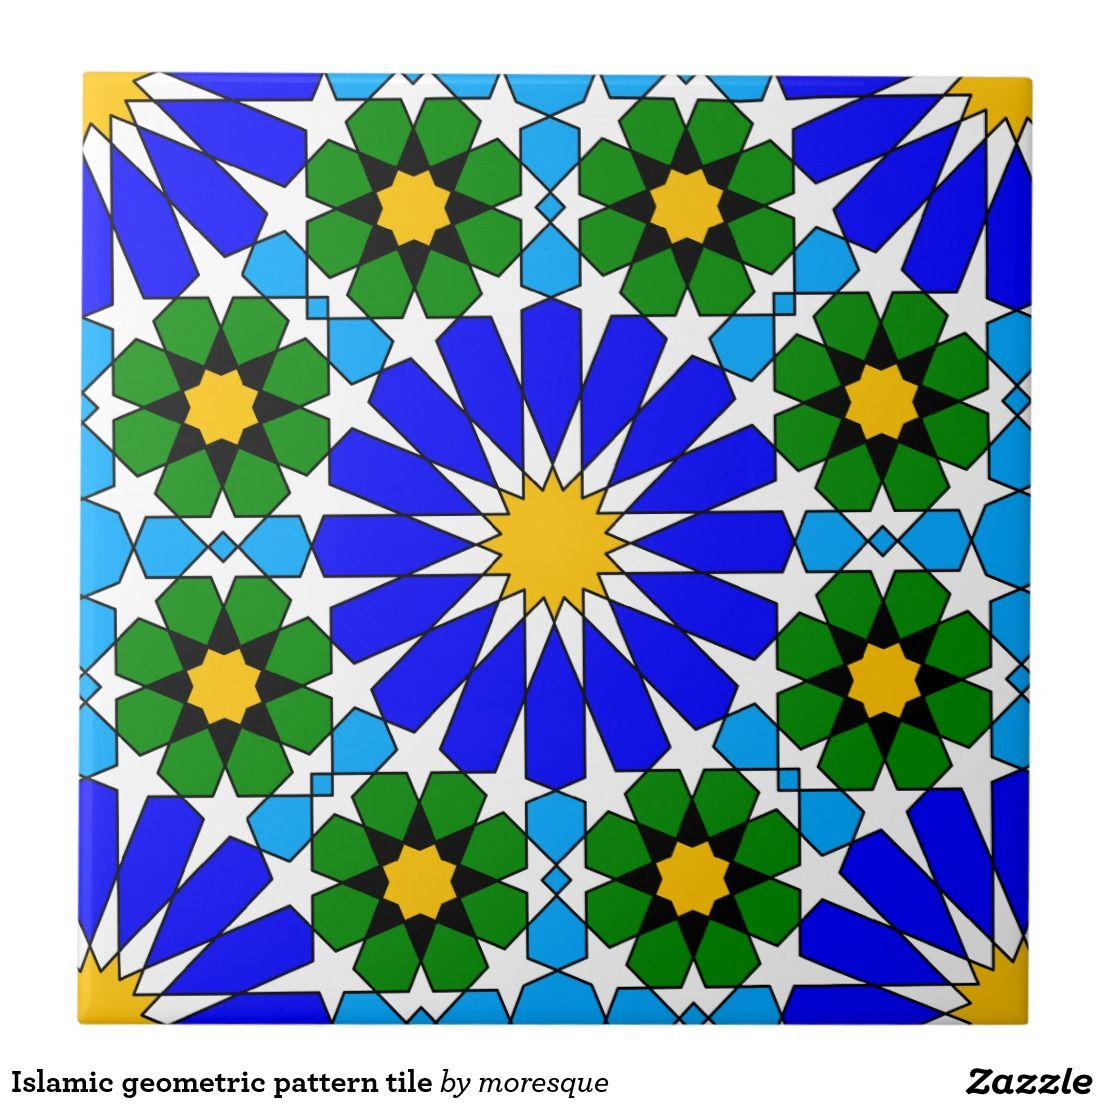 Islamic geometric pattern tile tiles pinterest islamic tiles get your hands on zazzles colorful mosaic pattern ceramic tiles search through our wonderful designs find great tiles to decorate your home dailygadgetfo Images